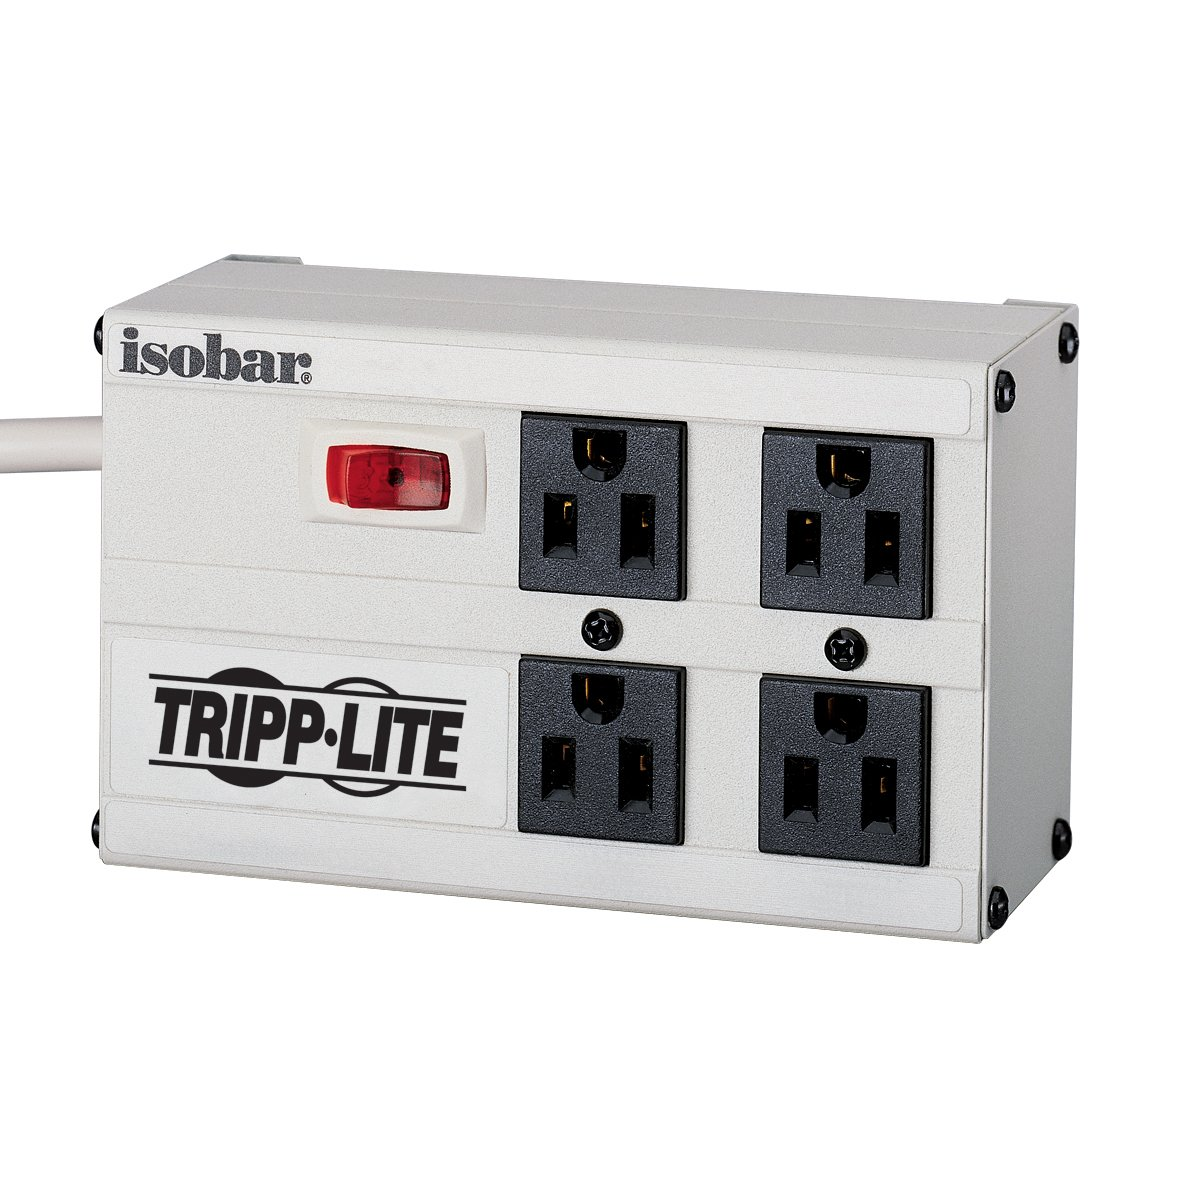 TRIPP LITE IBAR4-6D Isobar 4 Wide Spaced Outlet Surge Protector Power Strip, 6ft Cord Right Angle Plug, $50K INSURANCE (IBAR4)